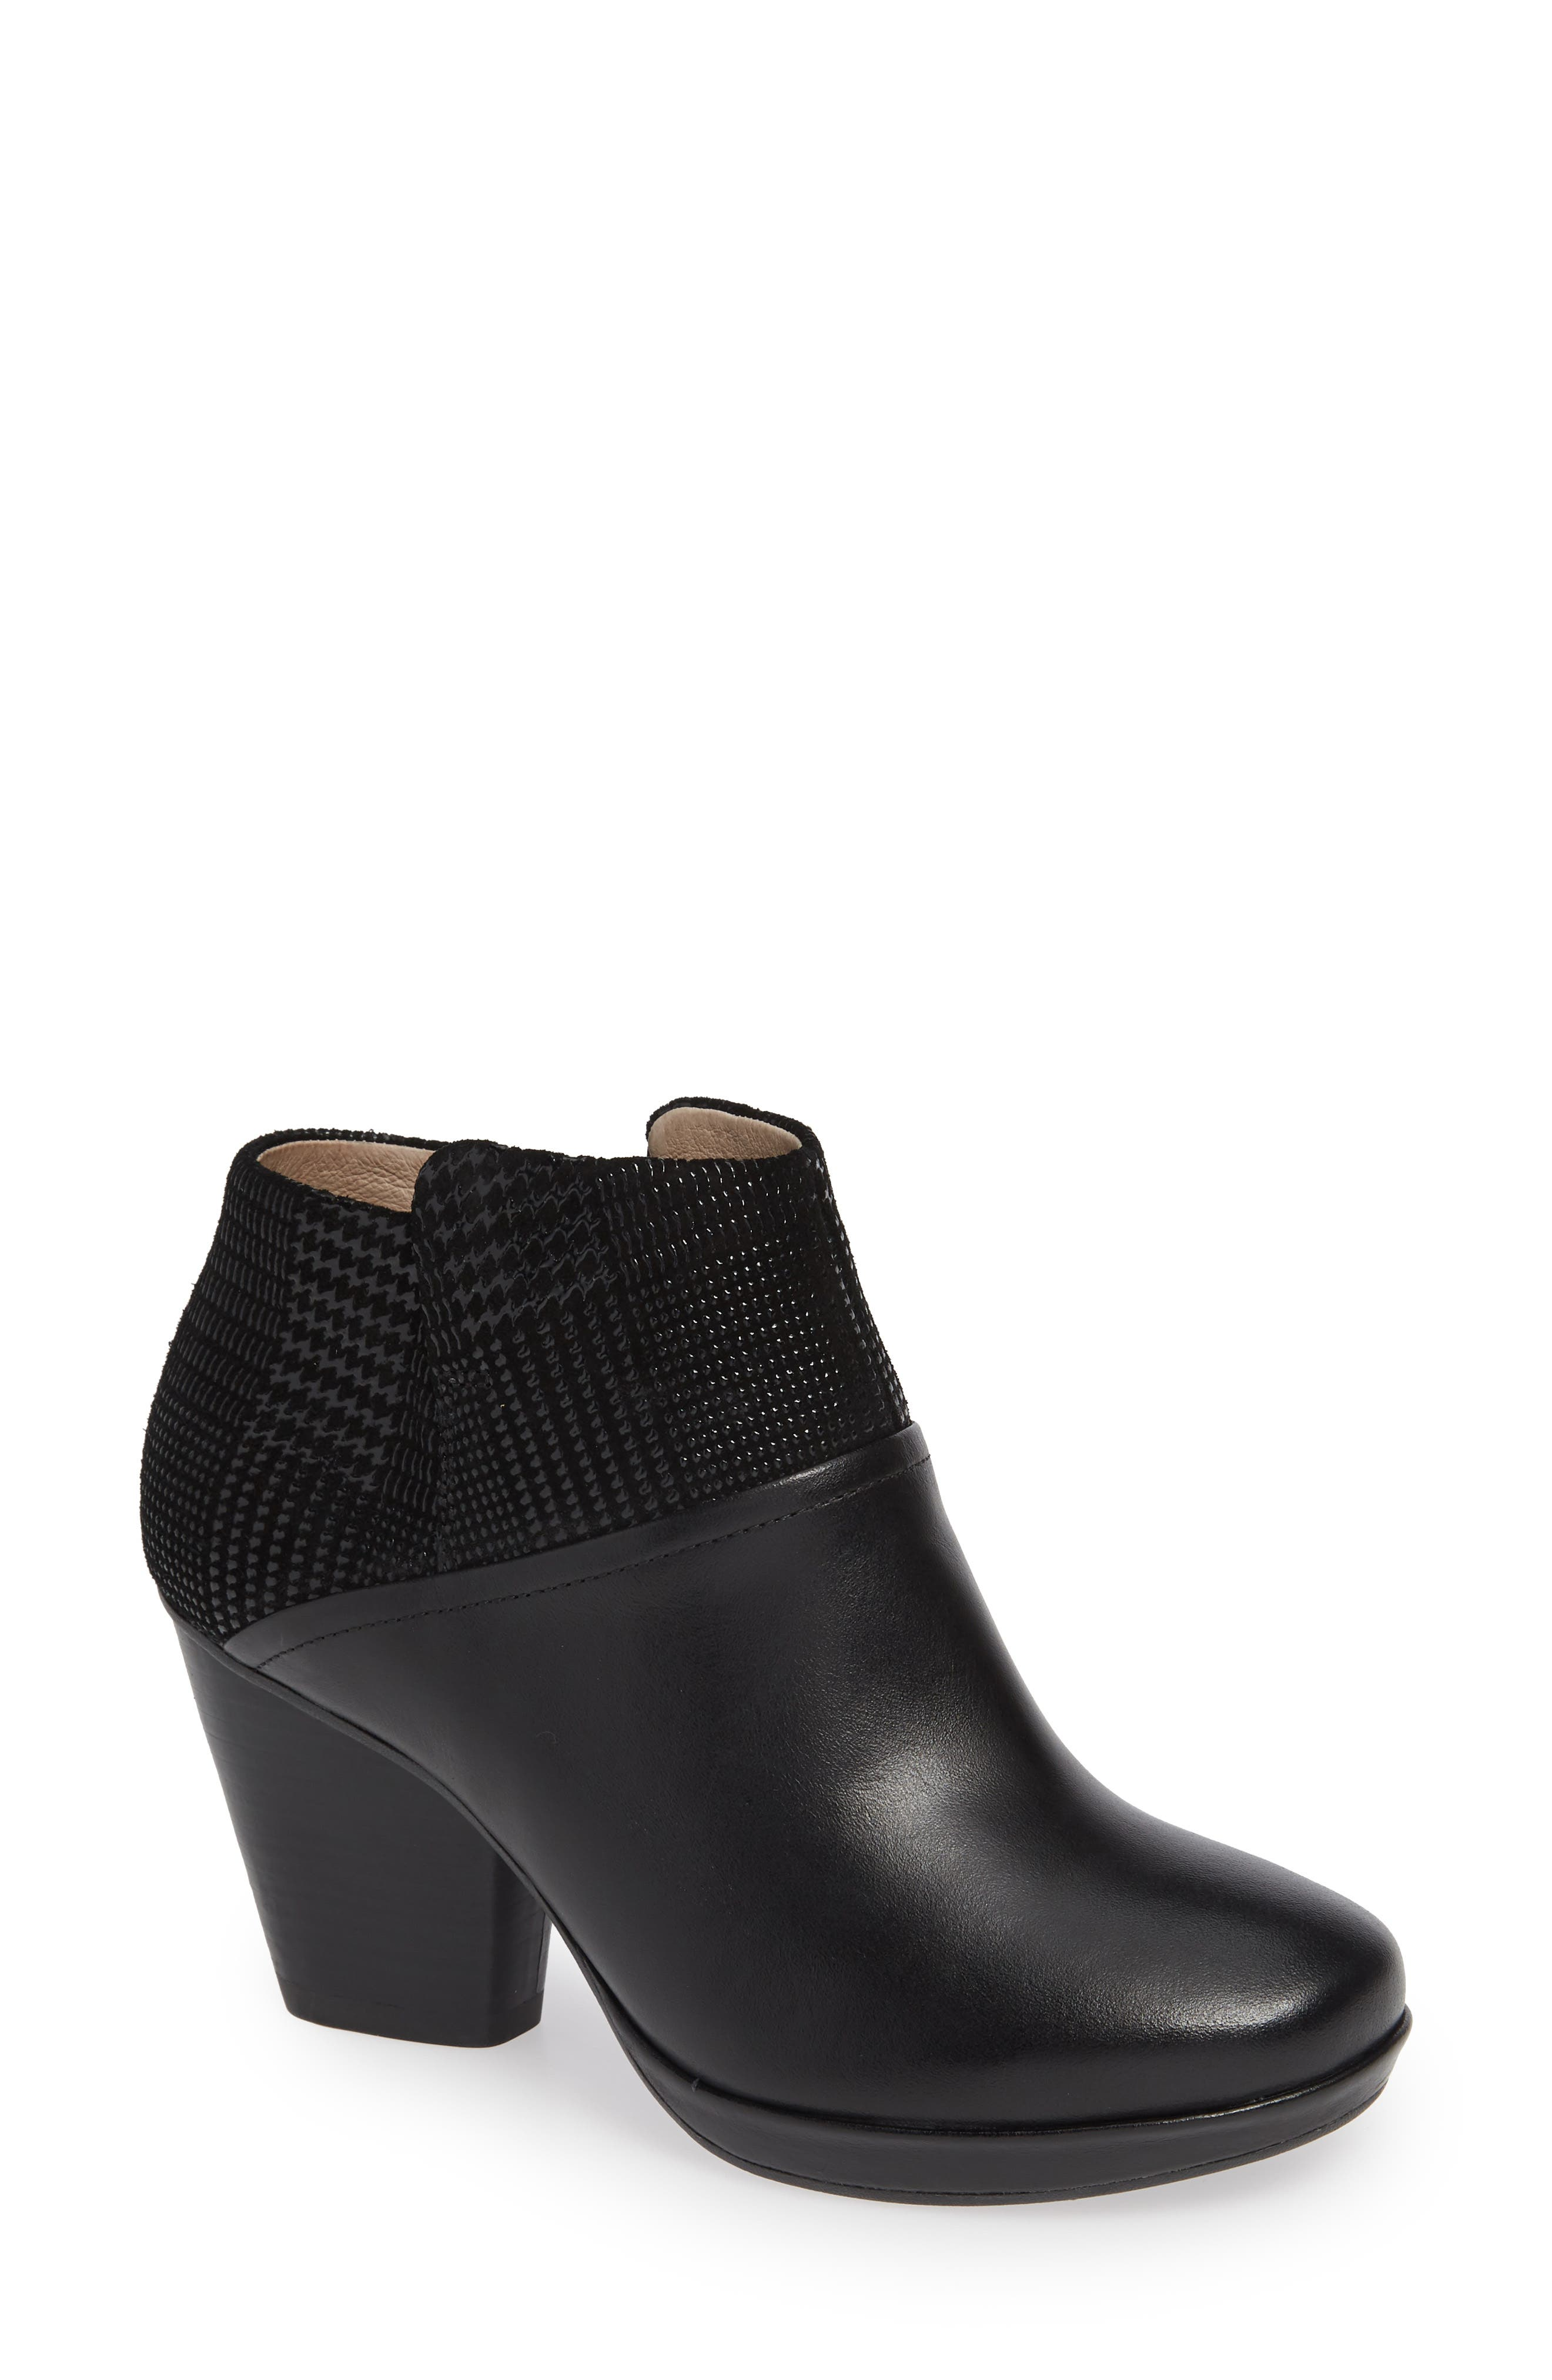 Miley Burnished Leather Bootie,                             Main thumbnail 1, color,                             BLACK BURNISHED LEATHER